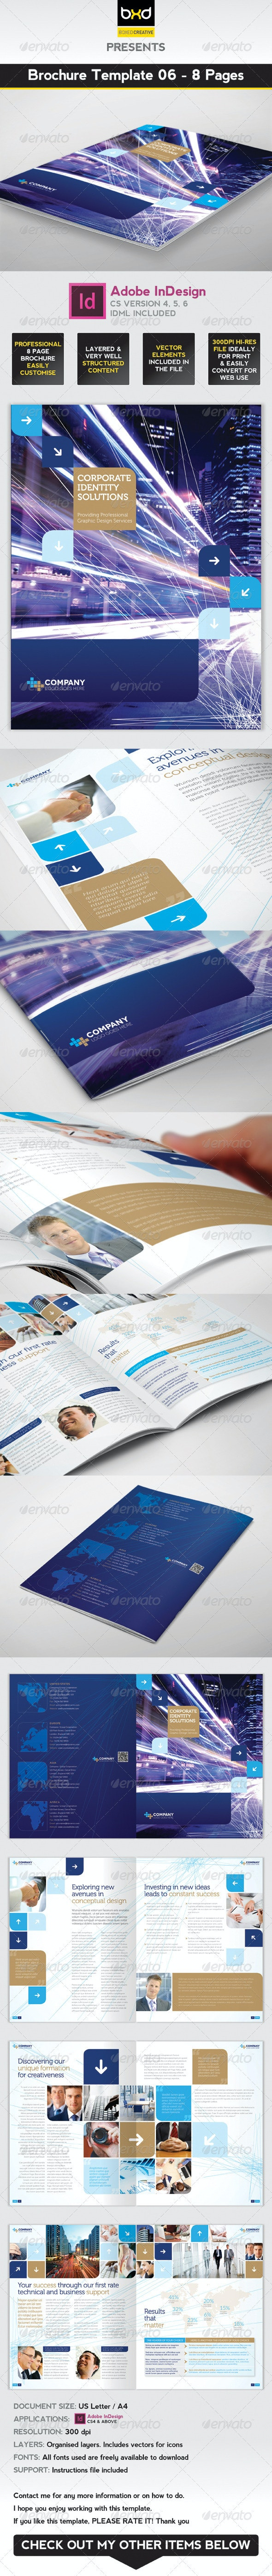 Brochure Template - InDesign 8 Page Layout 06 - Corporate Brochures